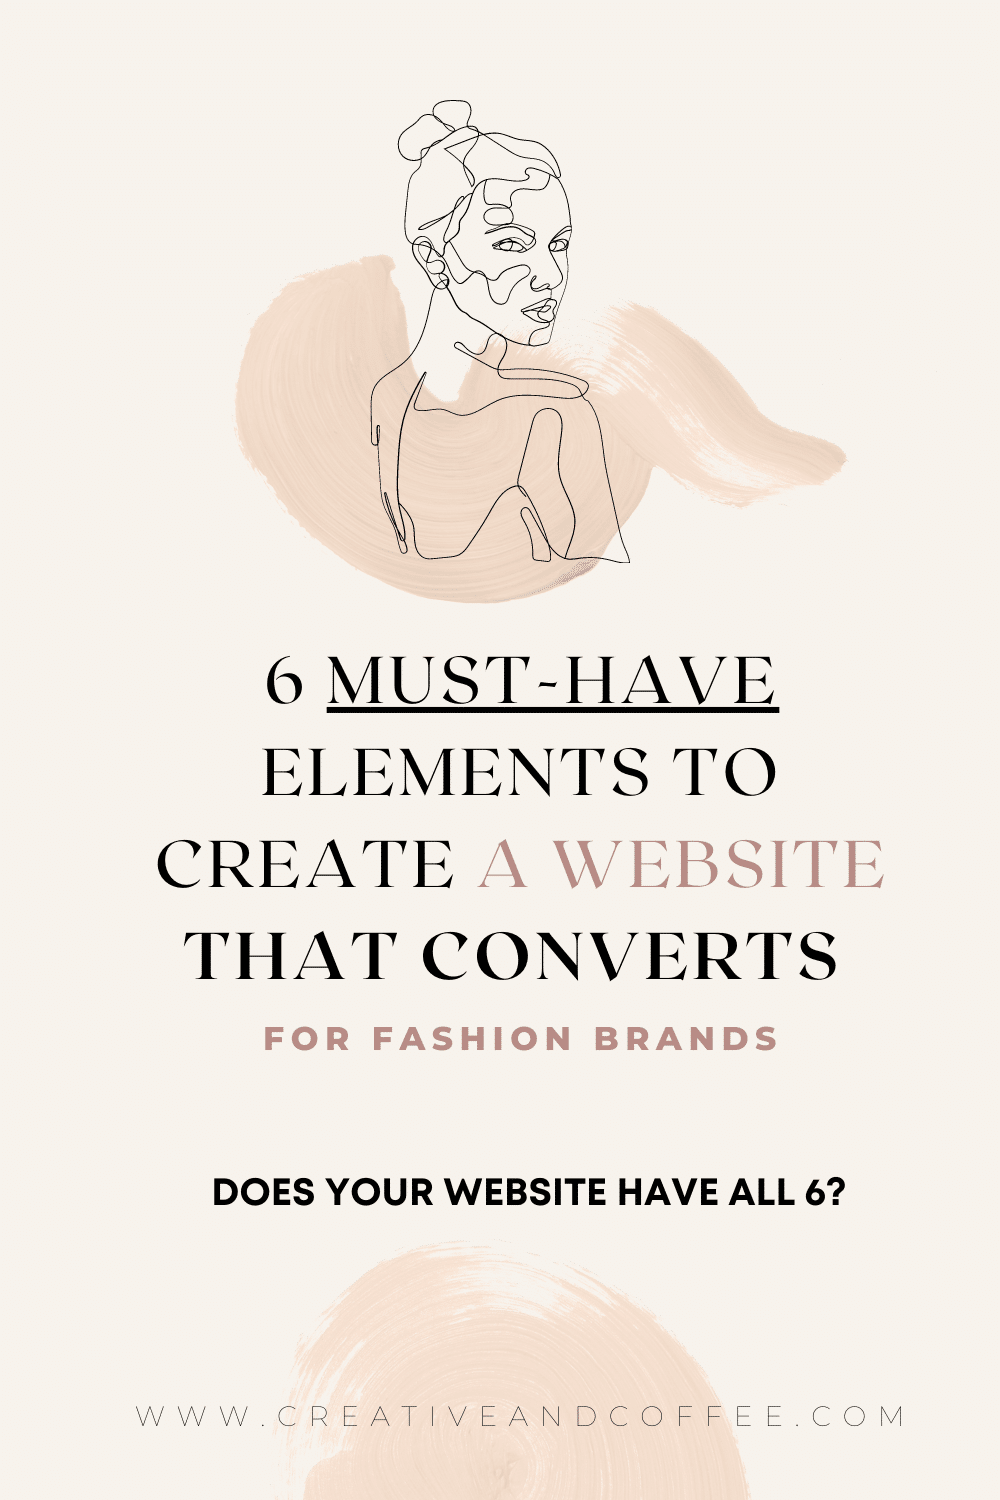 6 Ways To Create a Website That Converts